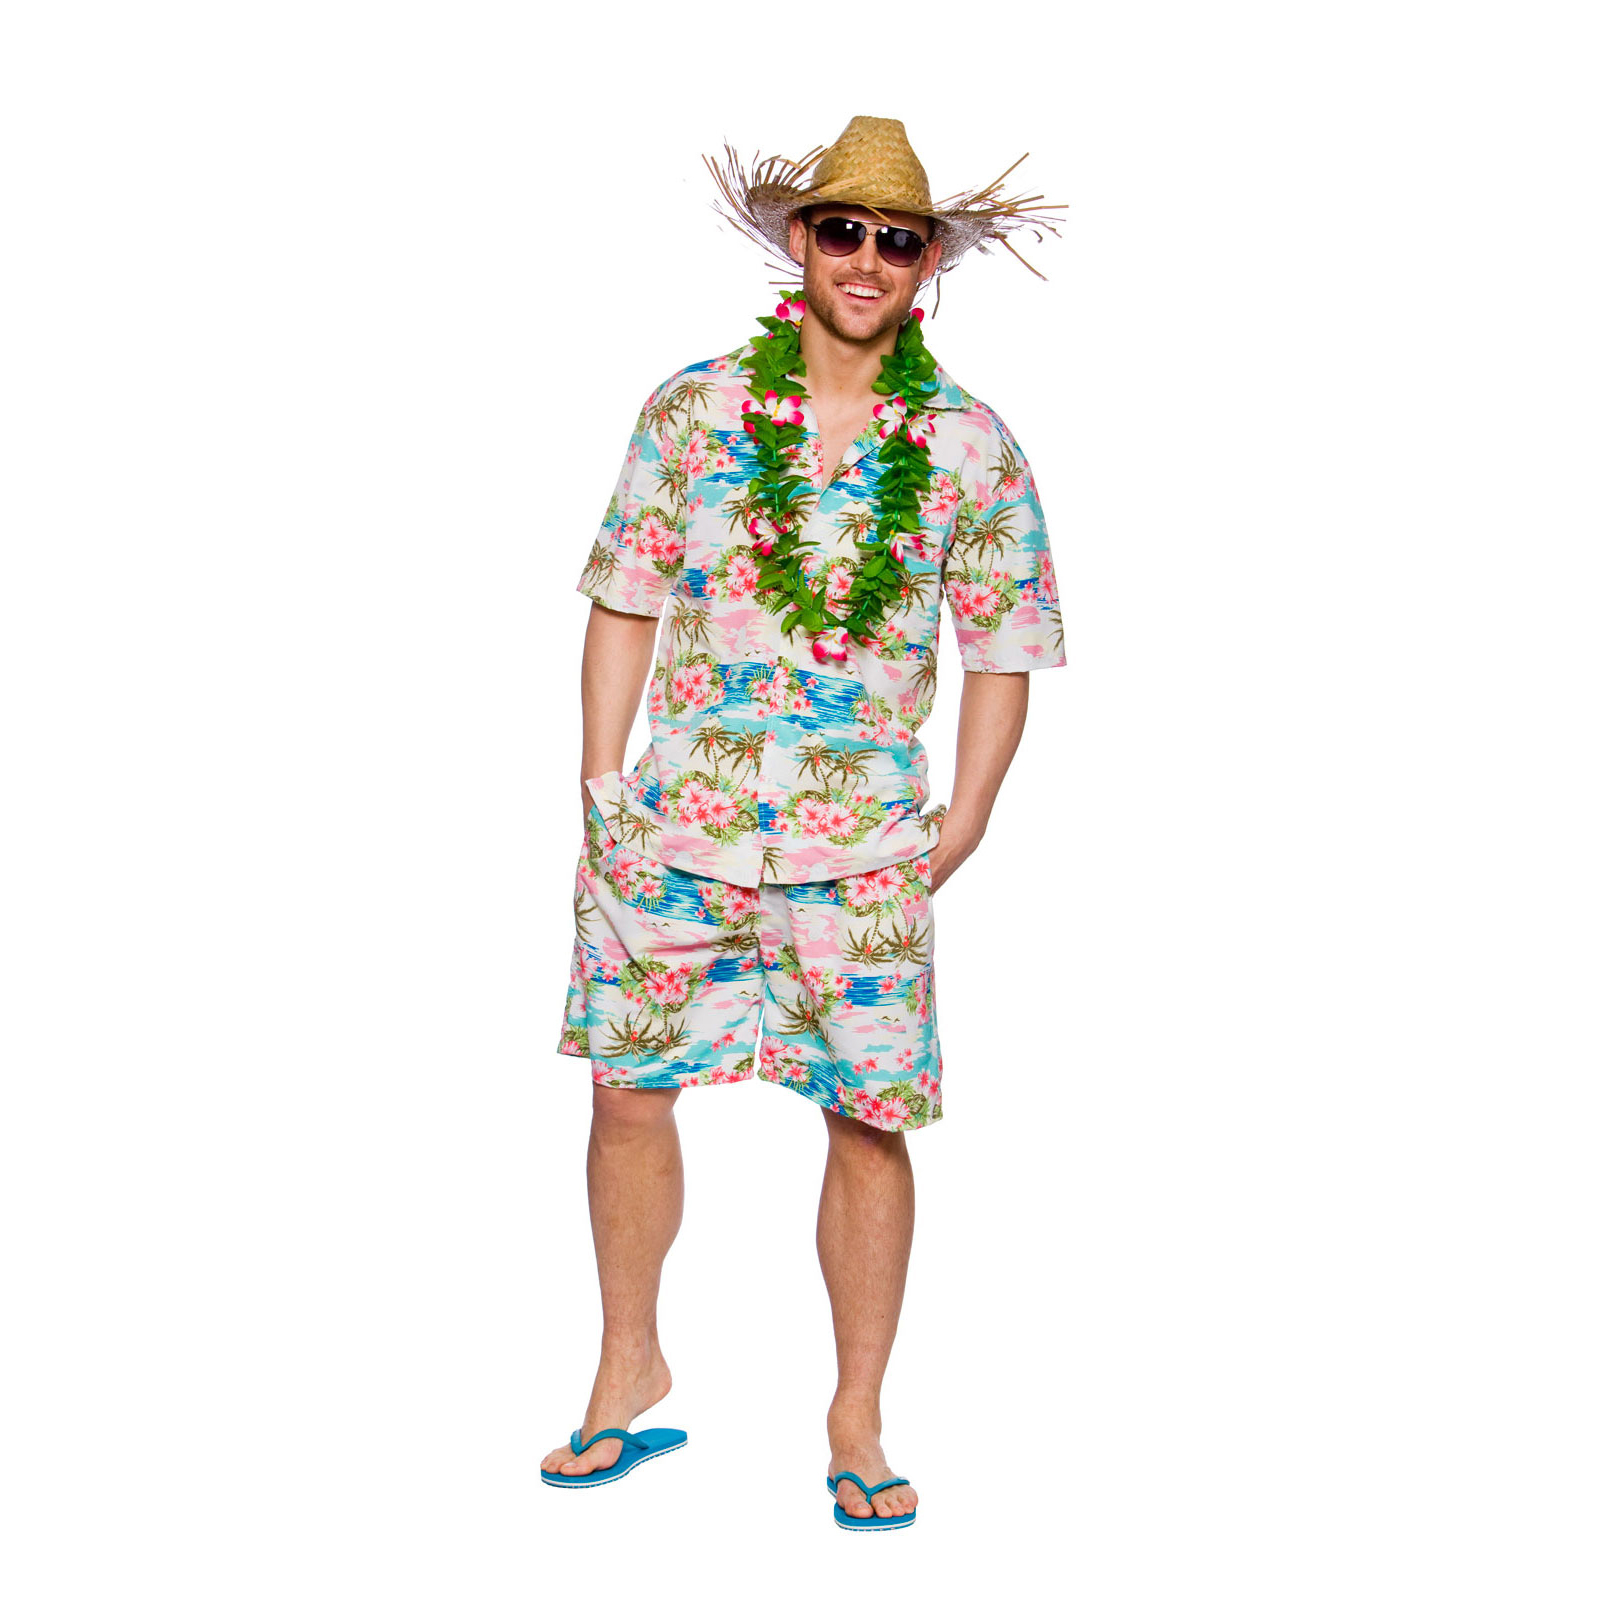 Adults Hawaiian Party Guy Fancy Dress Up Party Halloween Costume Outfit New | eBay